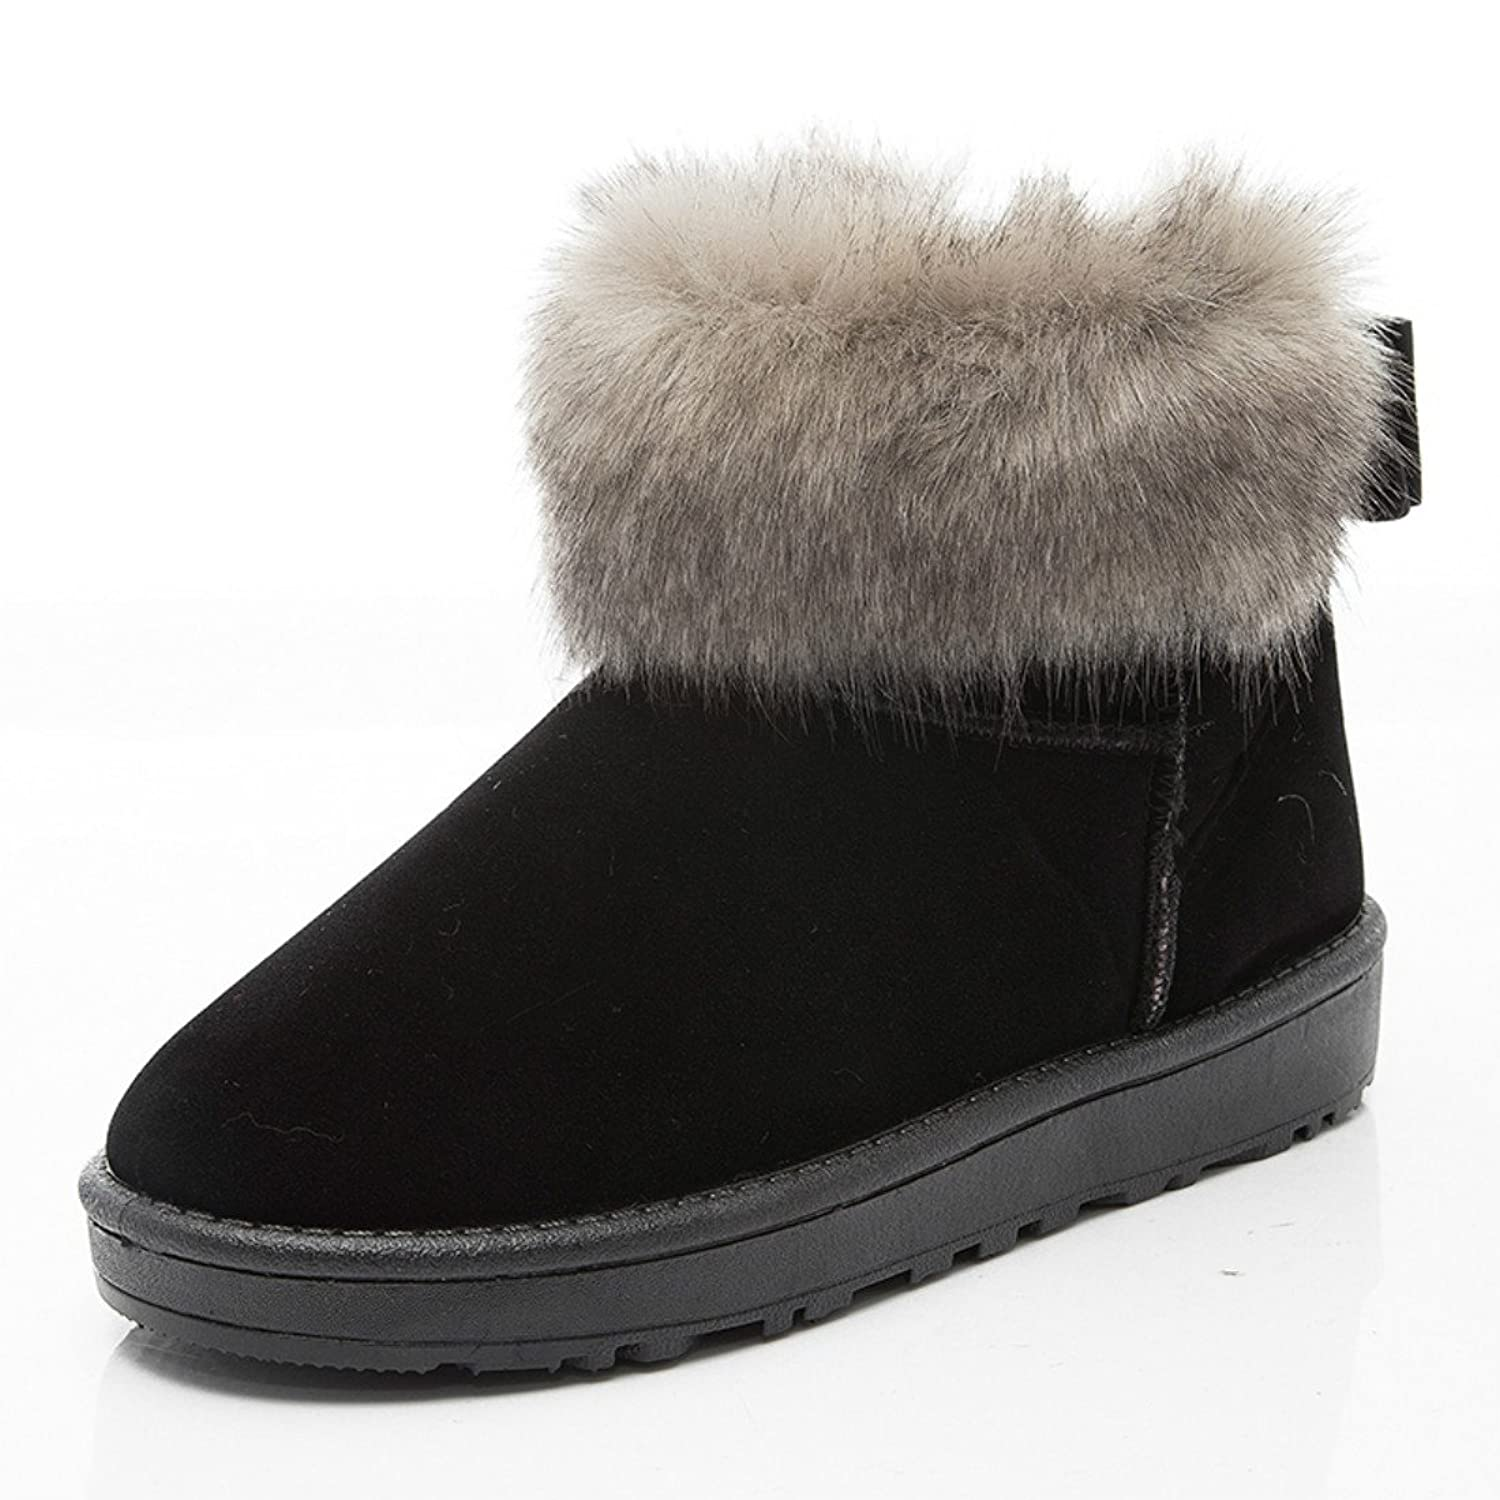 fashion womens ladies fur lined snow ankle boots winter shoes size (6.5, Black)